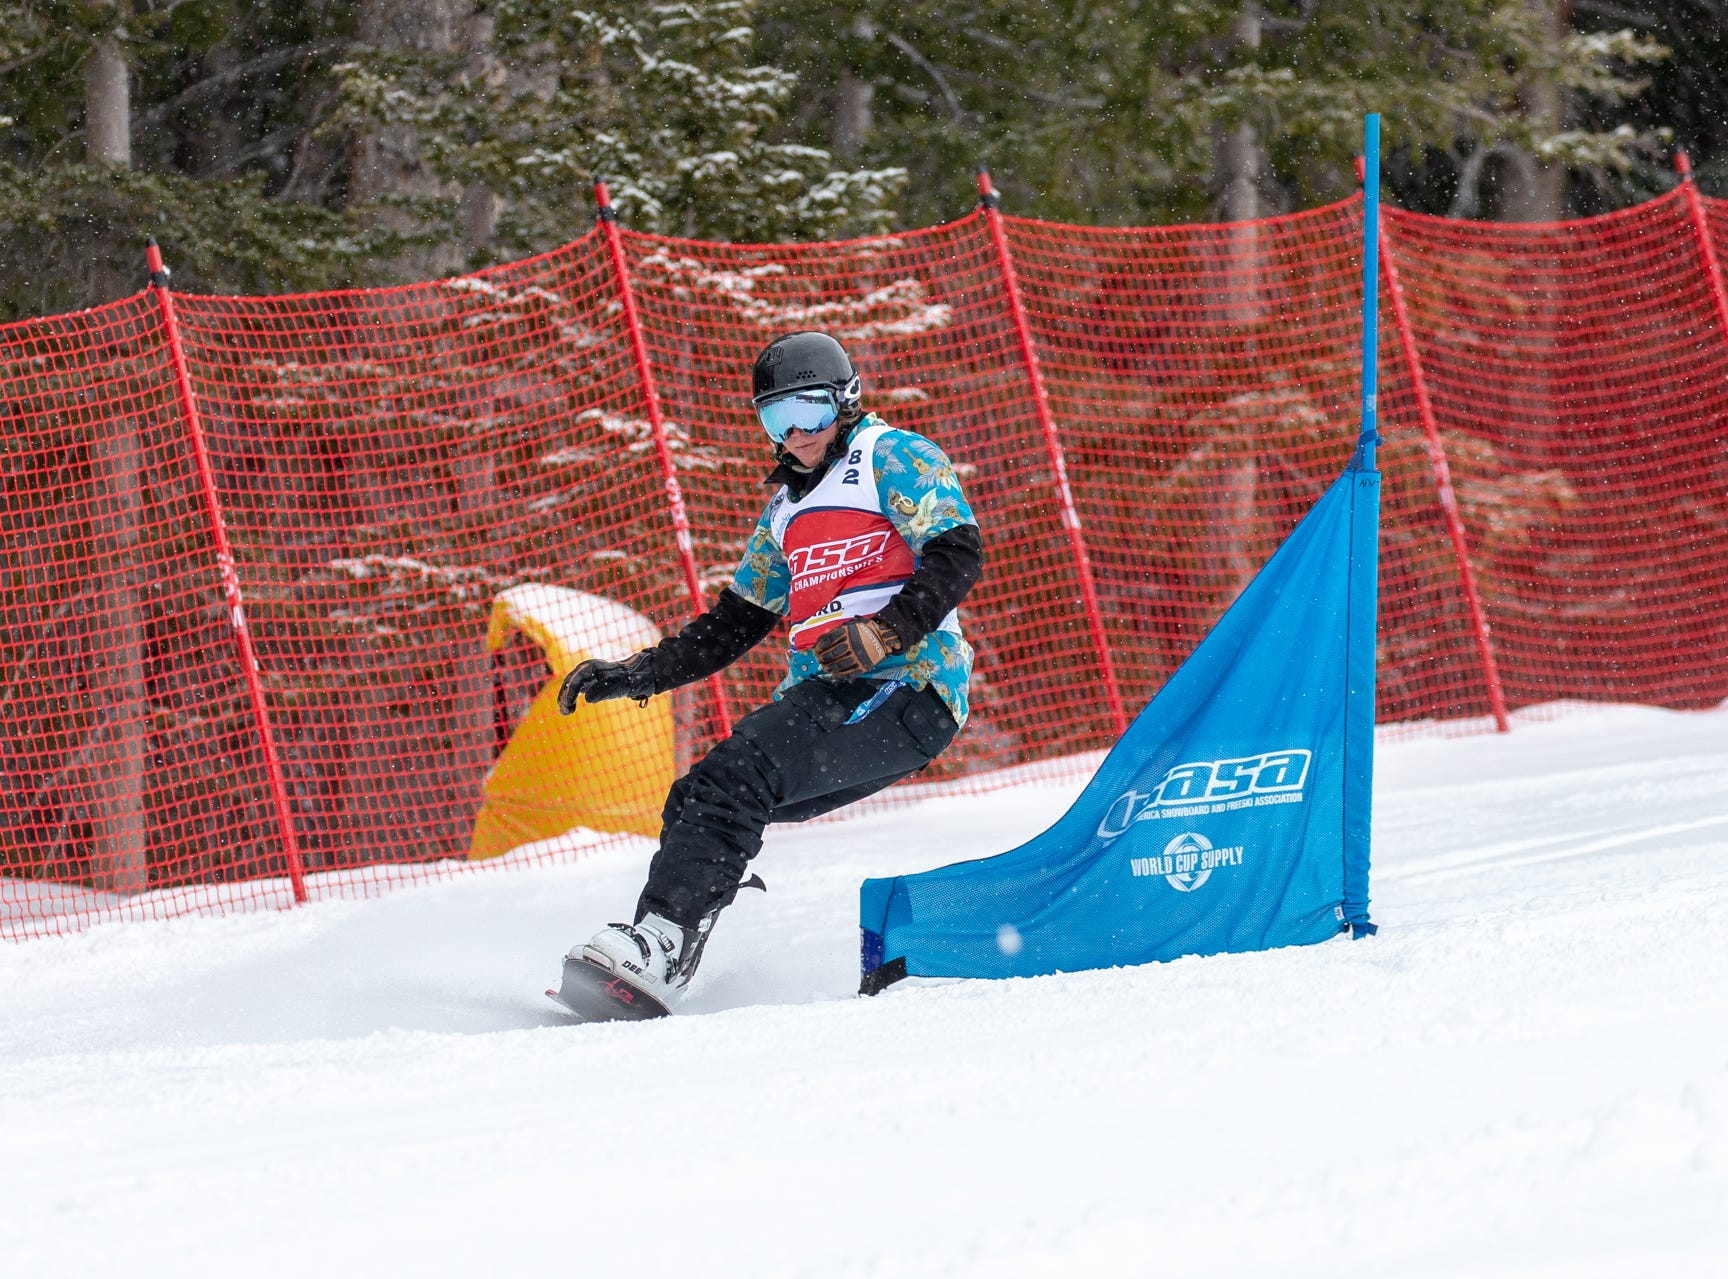 Shasta High grad Marc Speake / North State snowboarders compete at the 2019 USASA National Championships at Copper Mountain in Colorado.